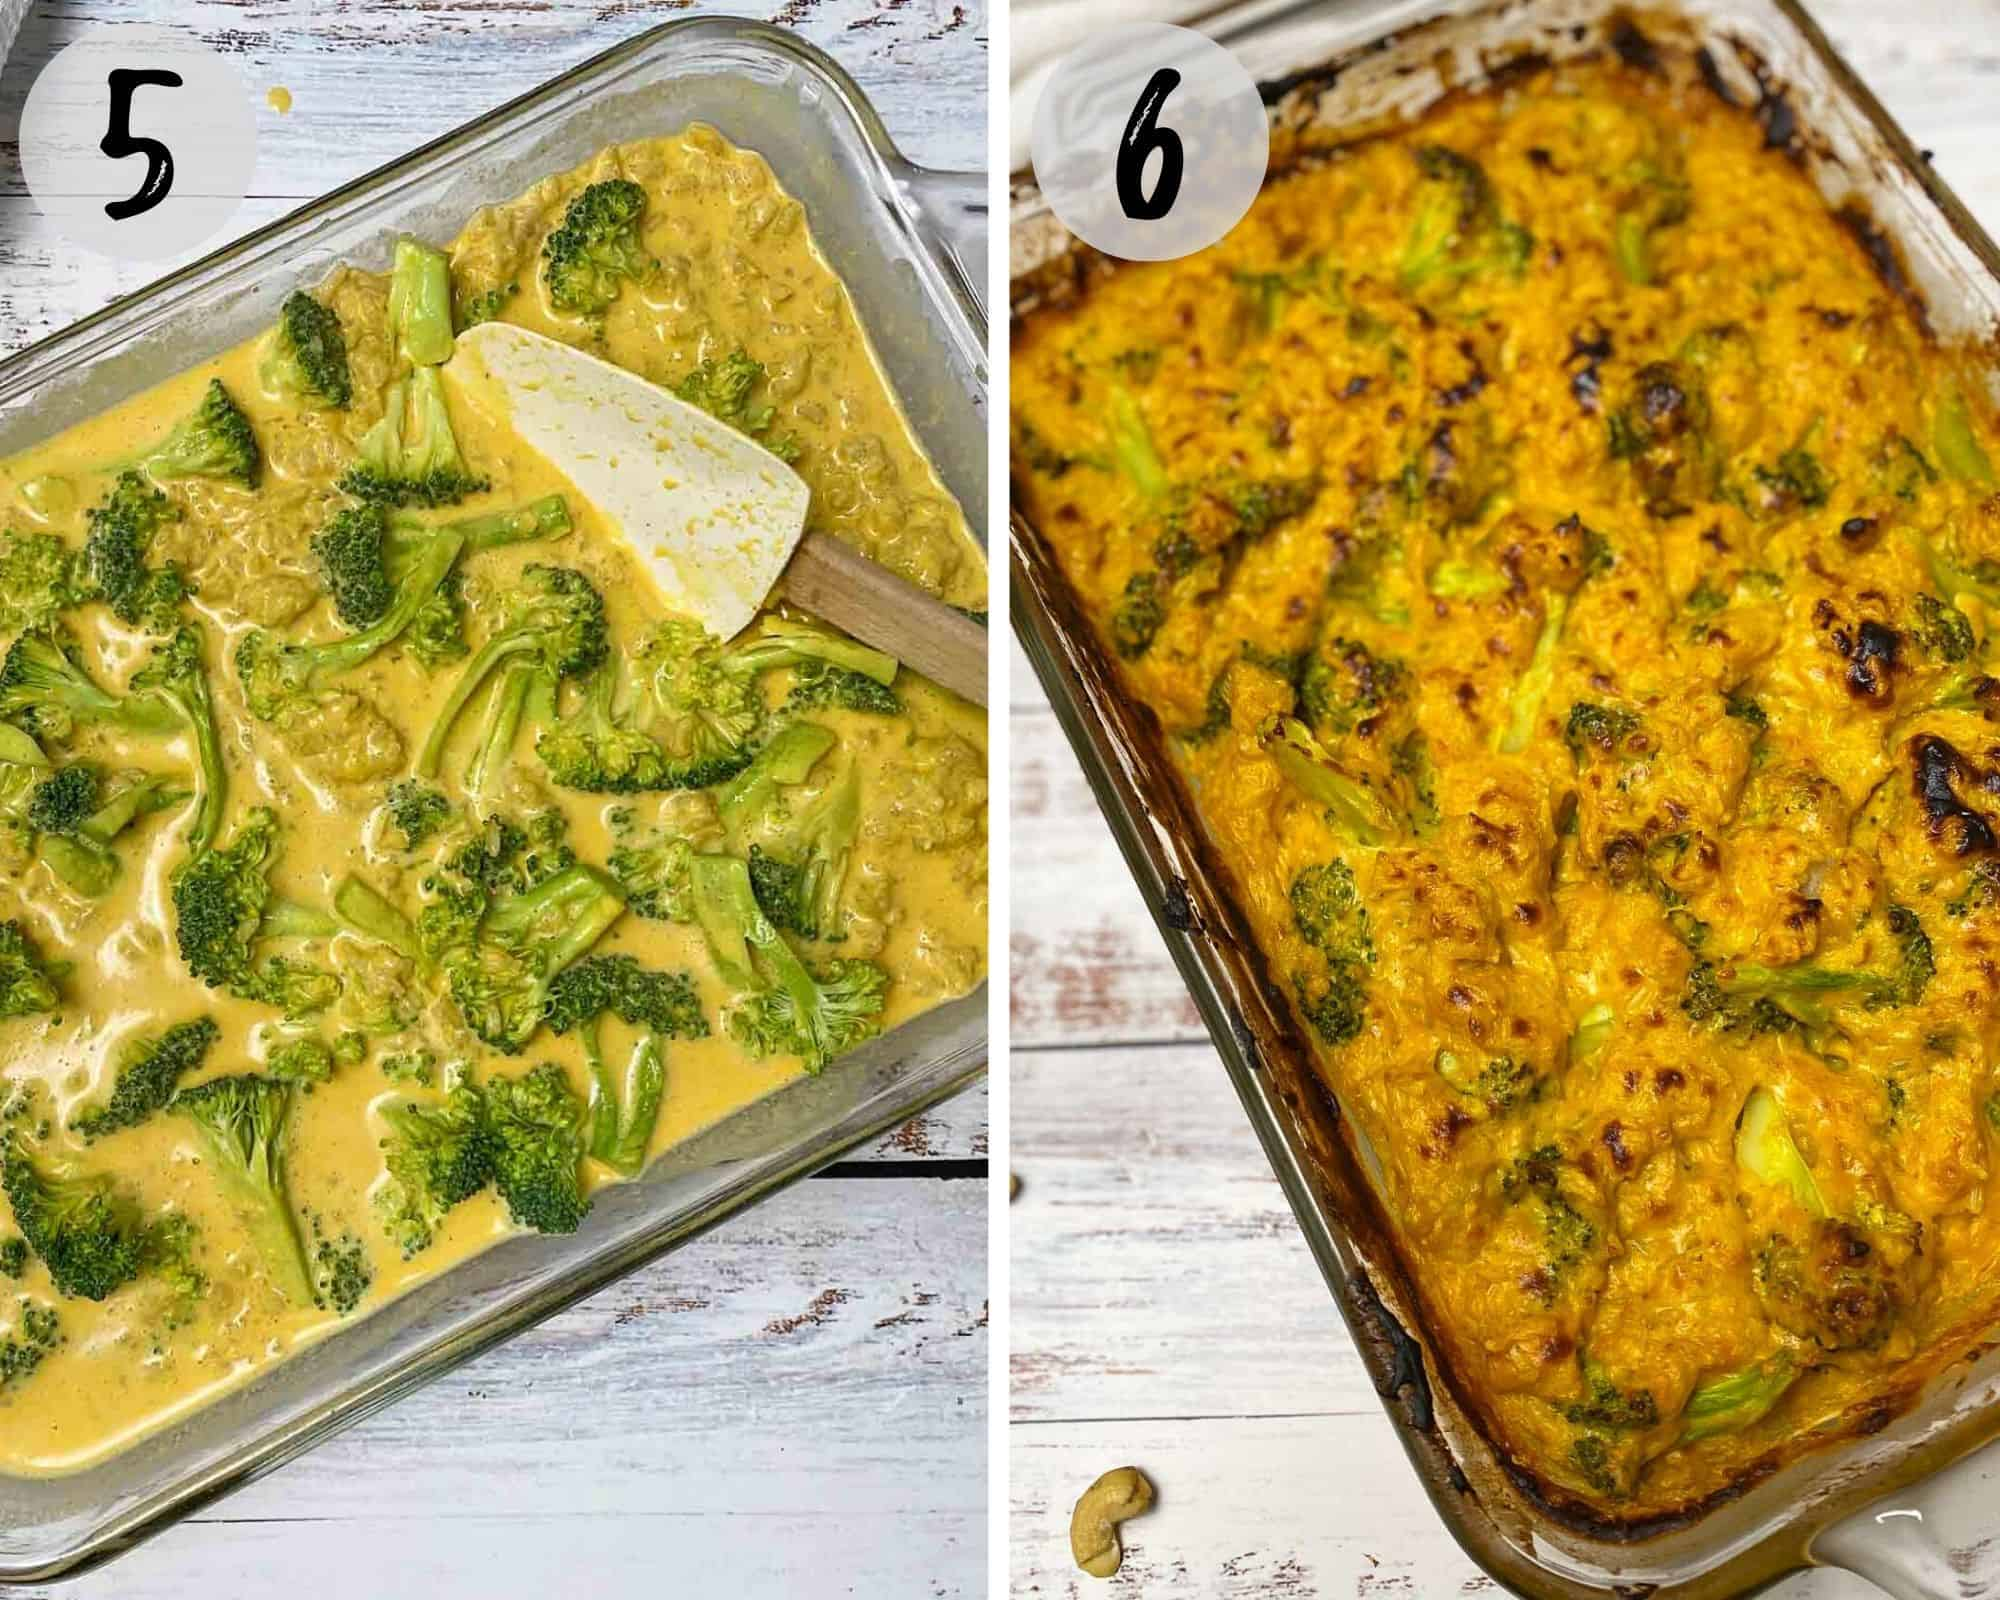 cheesy broccoli casserole in glass baking dish, before and after baking